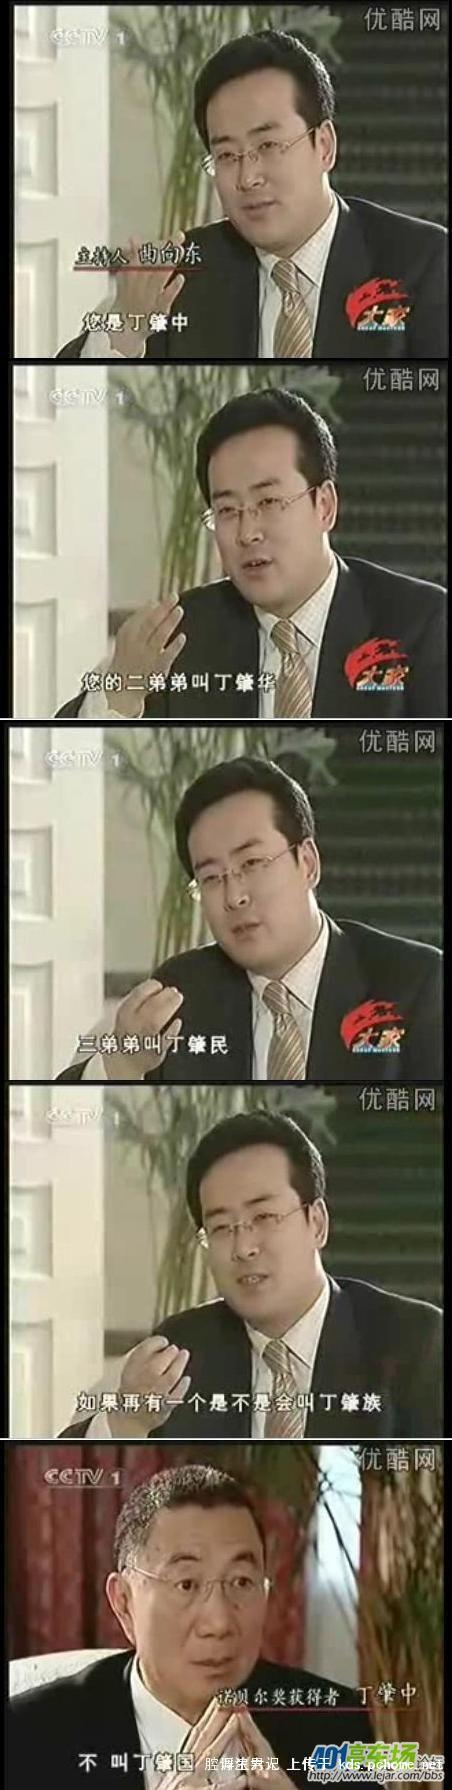 samuel-ting-ding-zhaozhong-cctv-interview